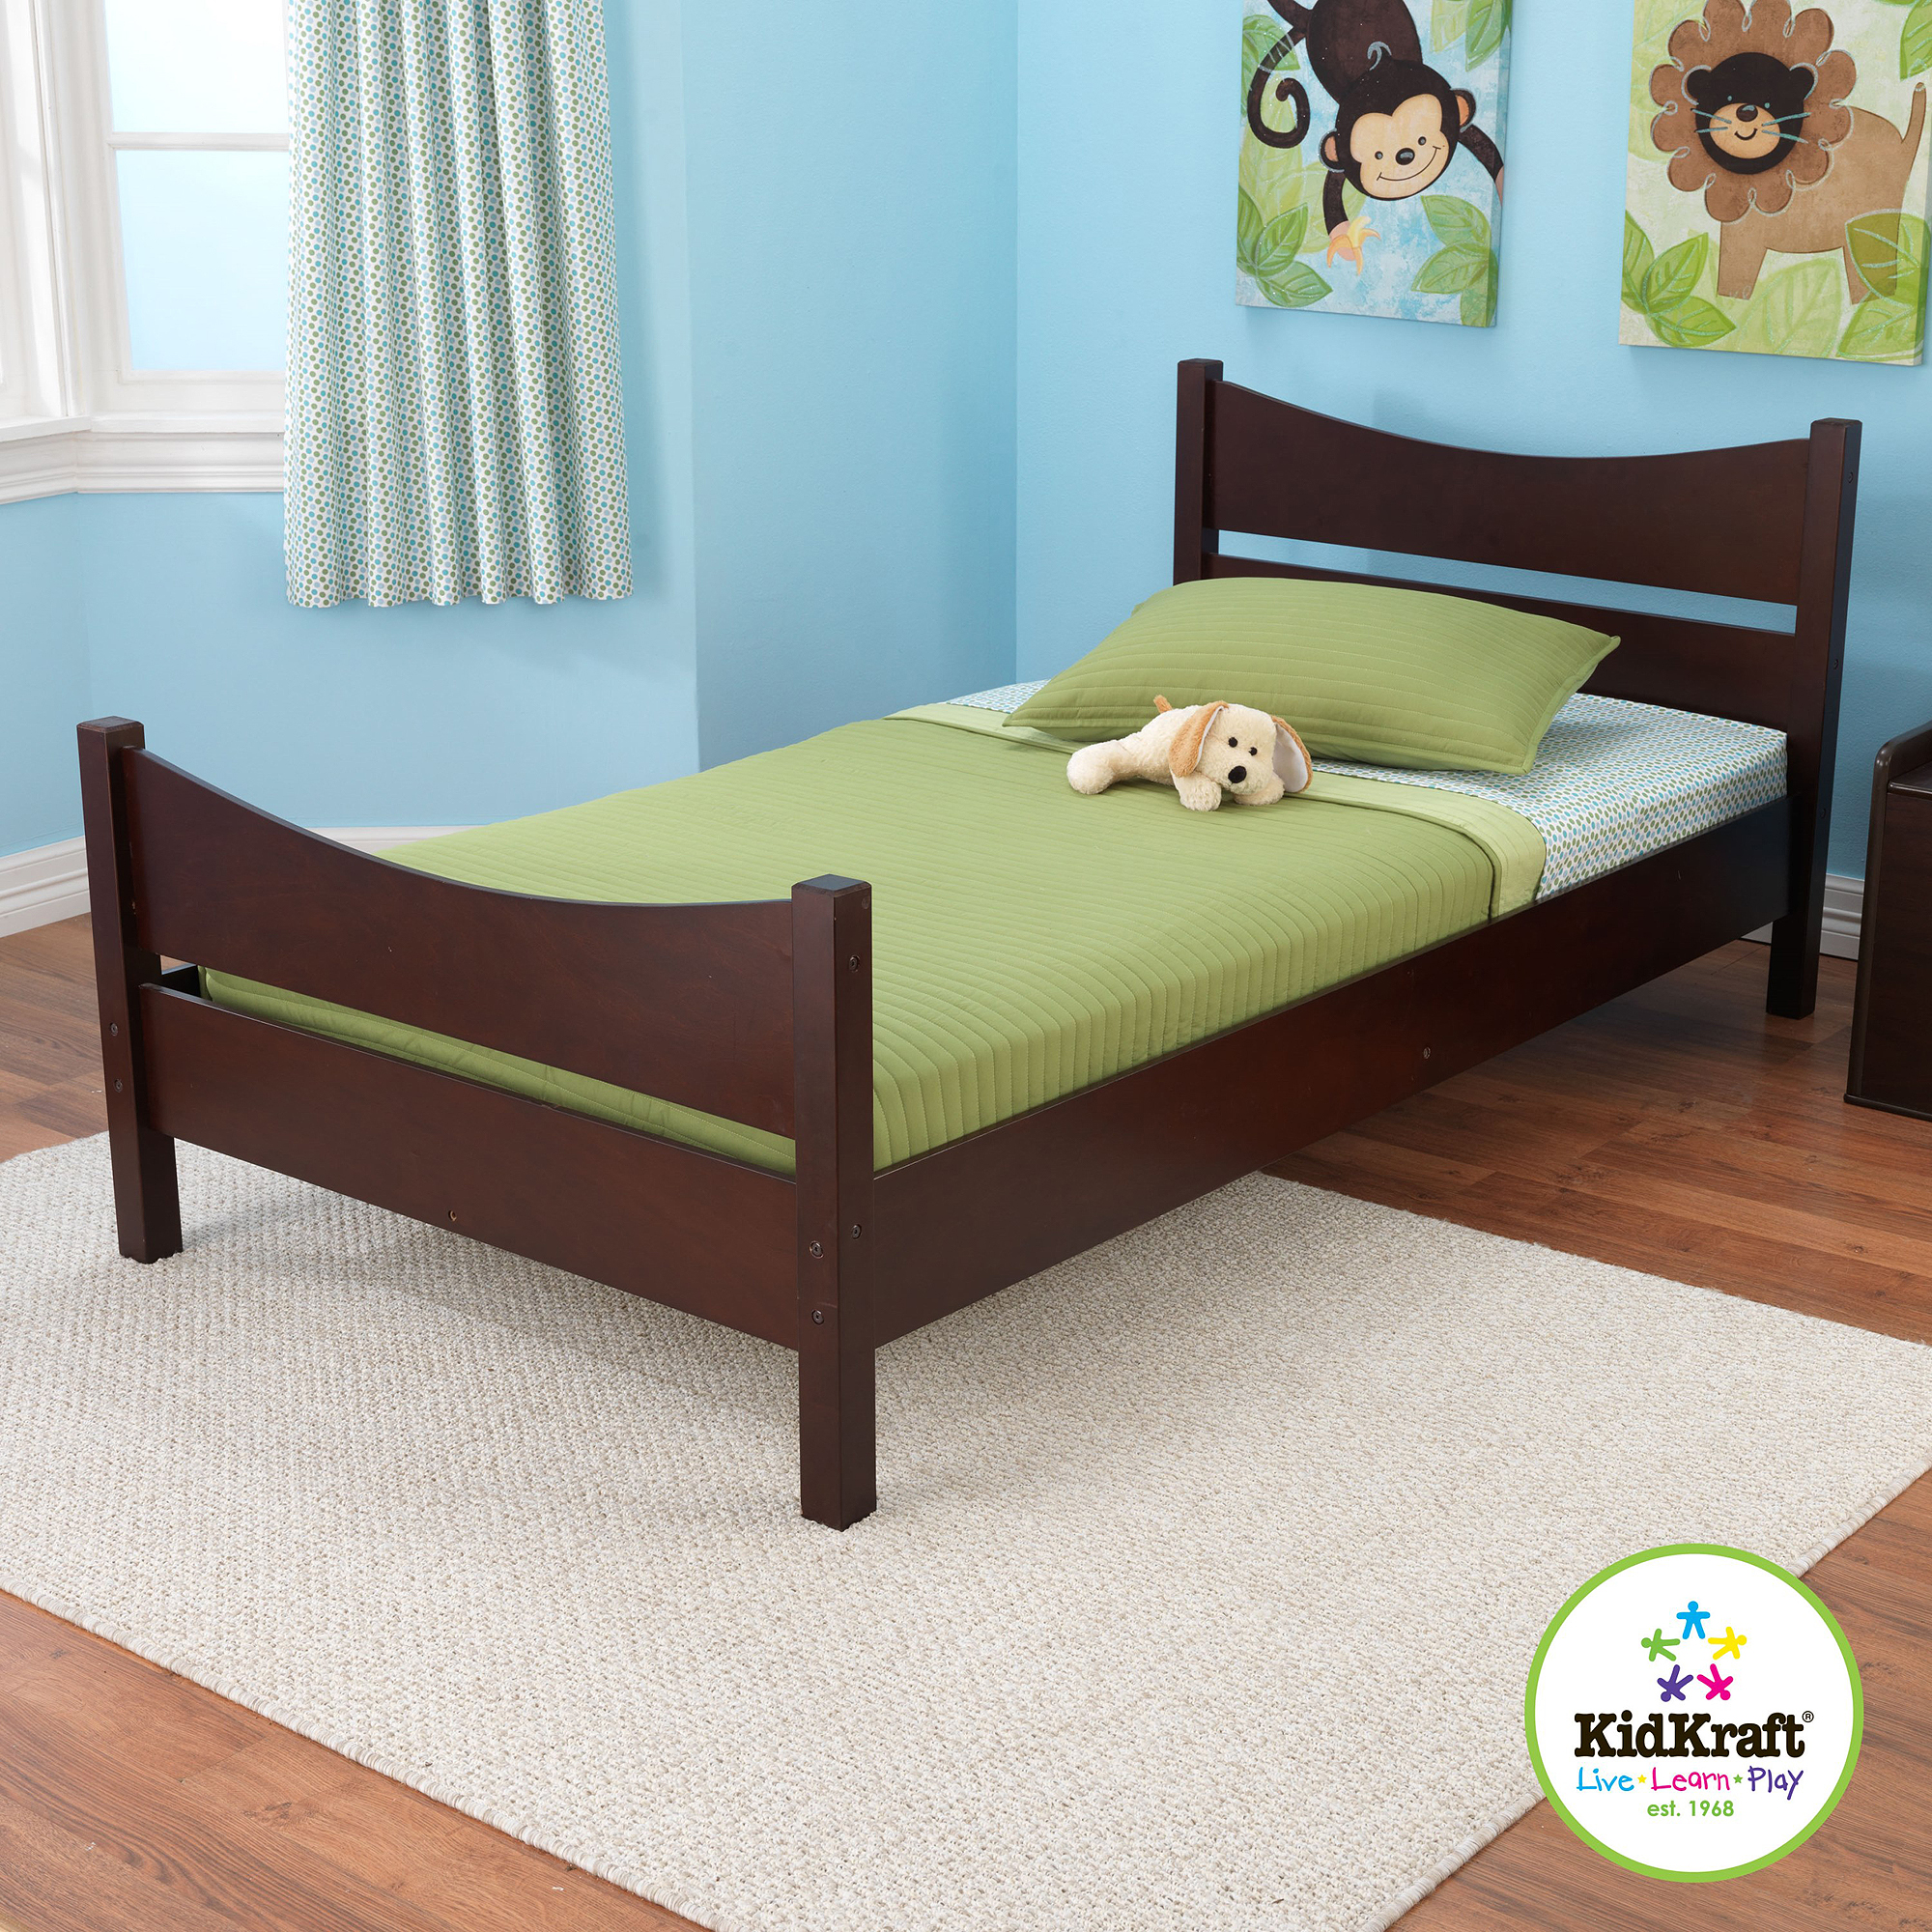 KidKraft Addison Twin Bed, Espresso